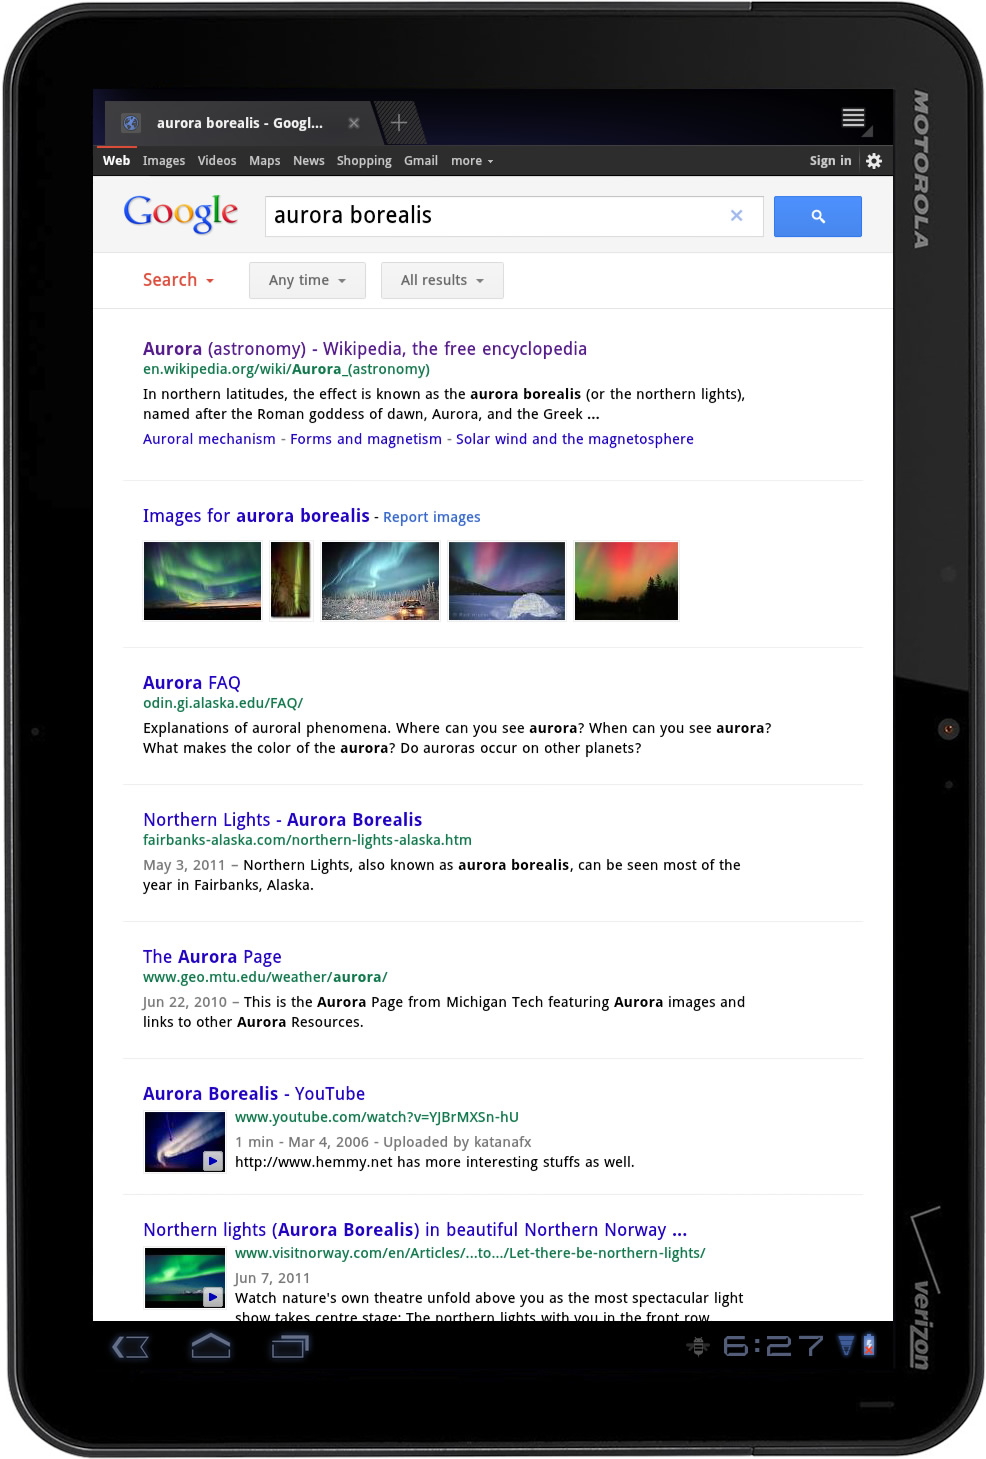 Astonishing Inside Search New Google Search Experience For Tablets Beutiful Home Inspiration Semekurdistantinfo